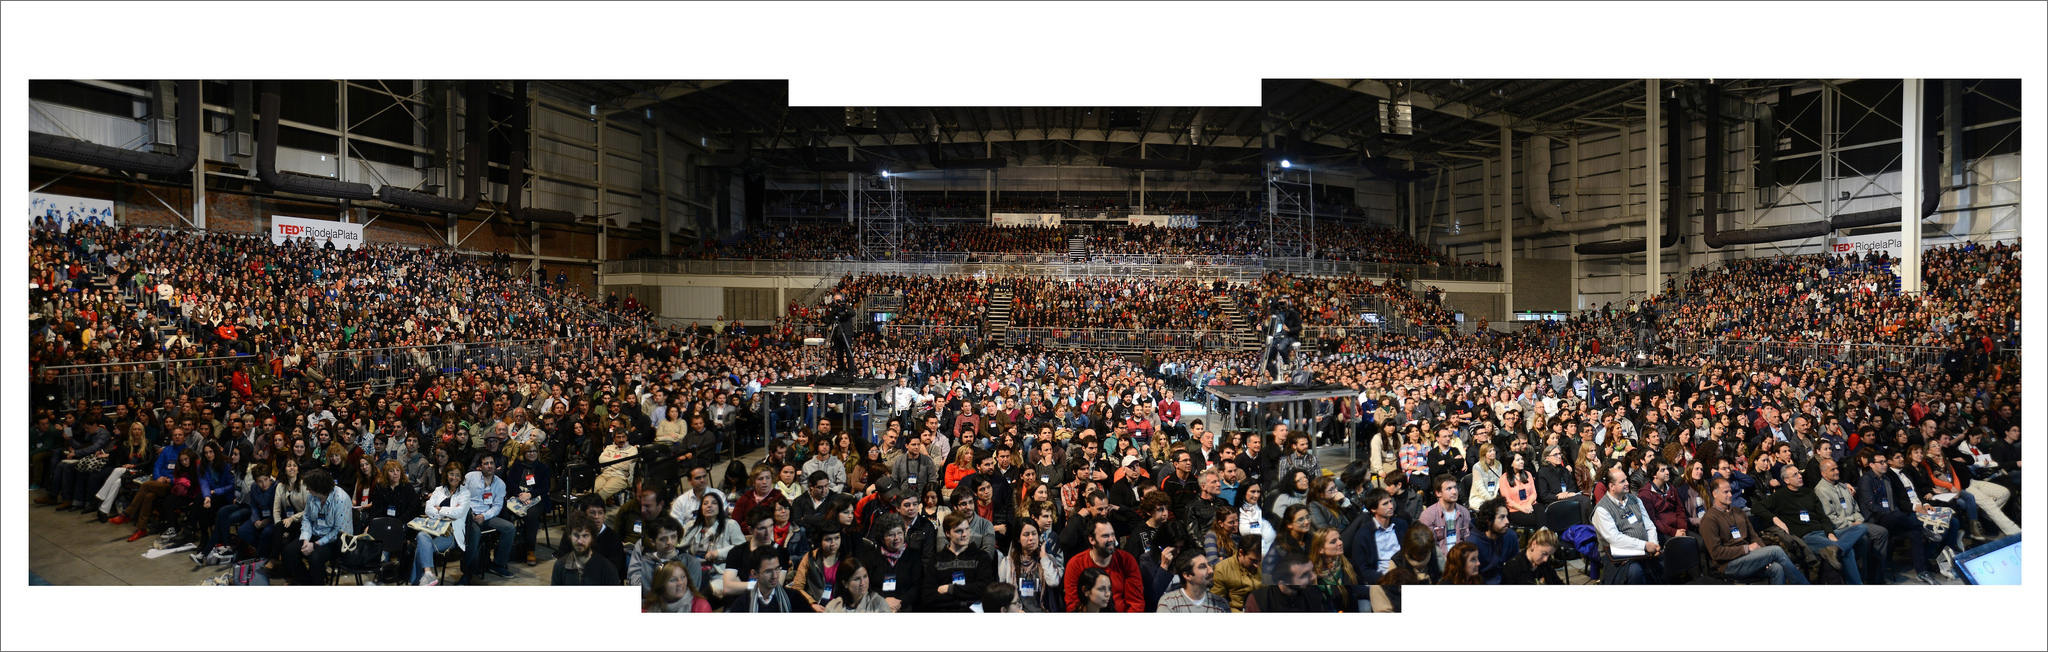 A composite image of the crowd.